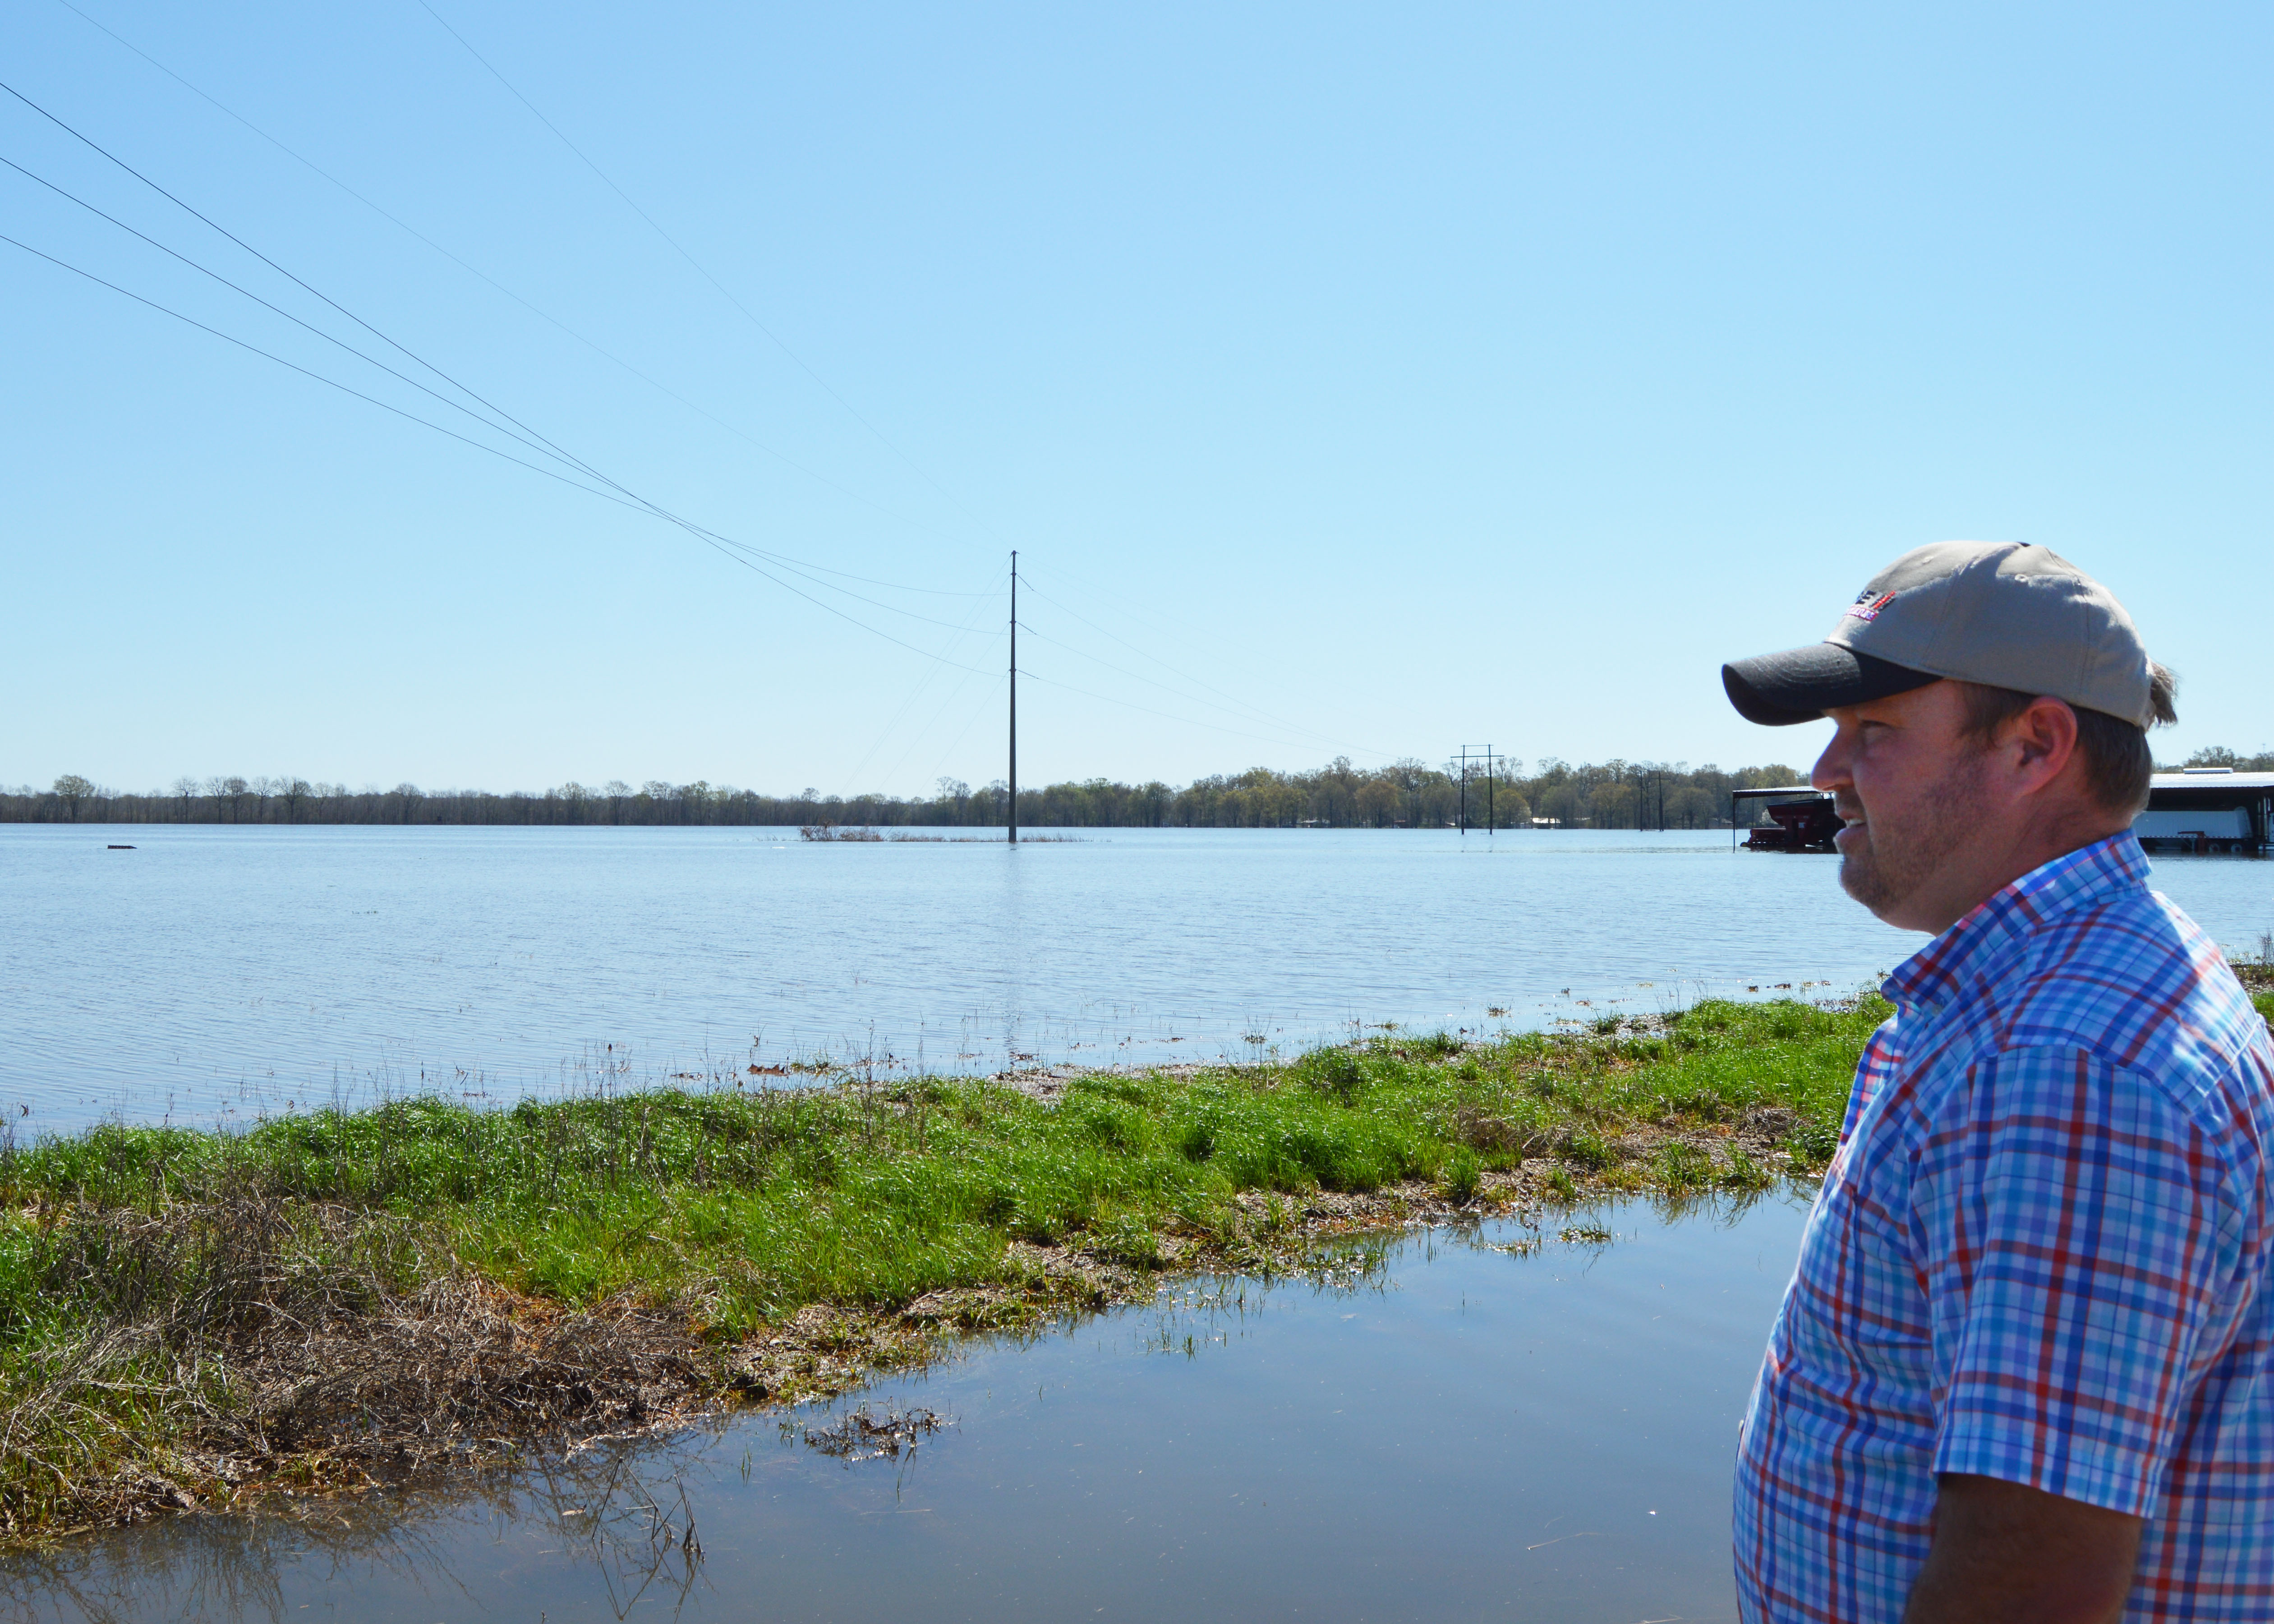 Corn hardest hit by flooding in Louisiana